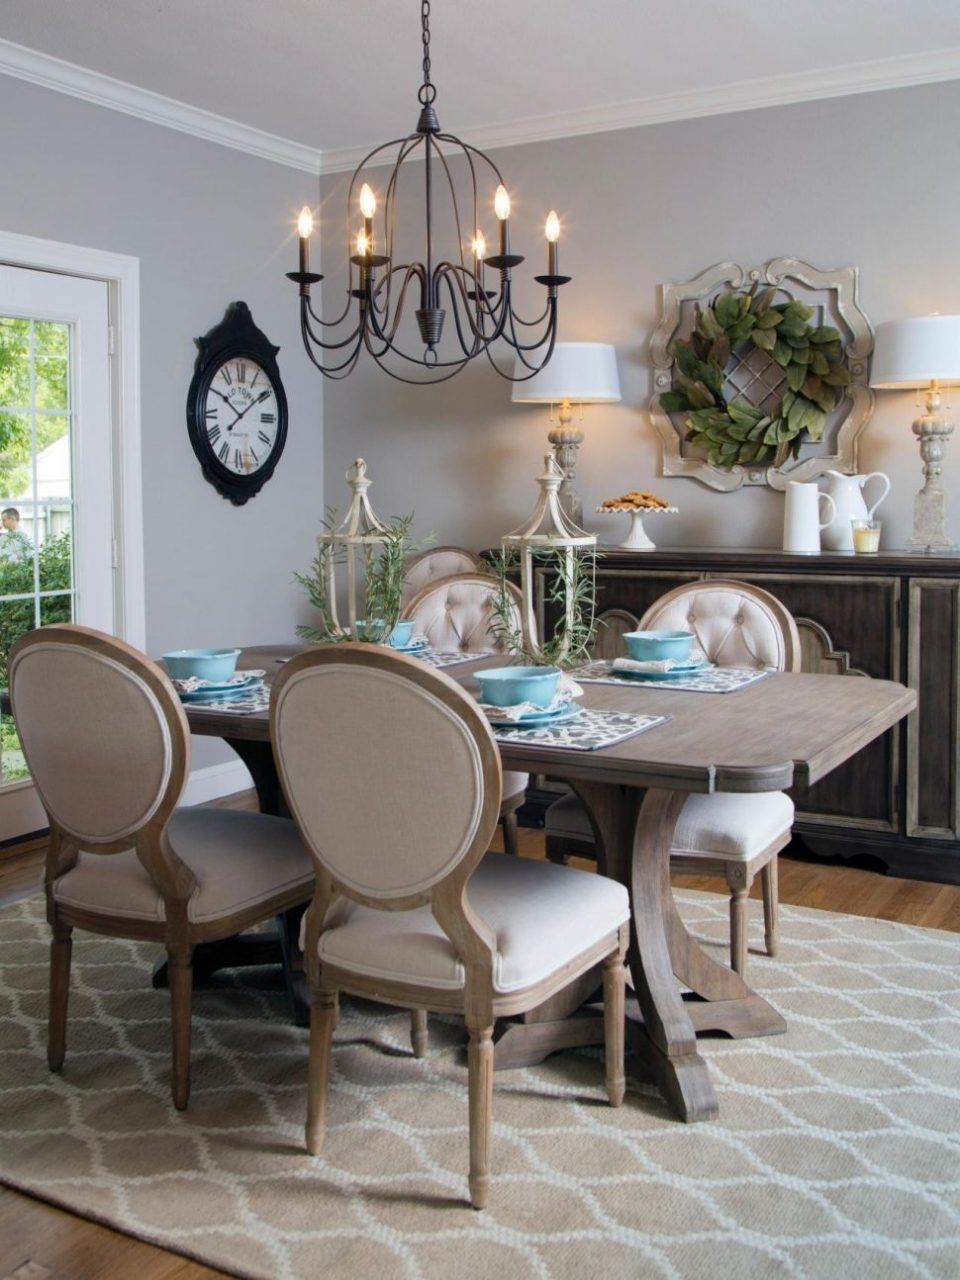 Dining Room Photos Hgtvs Fixer Upper With Chip And Joanna Gaines